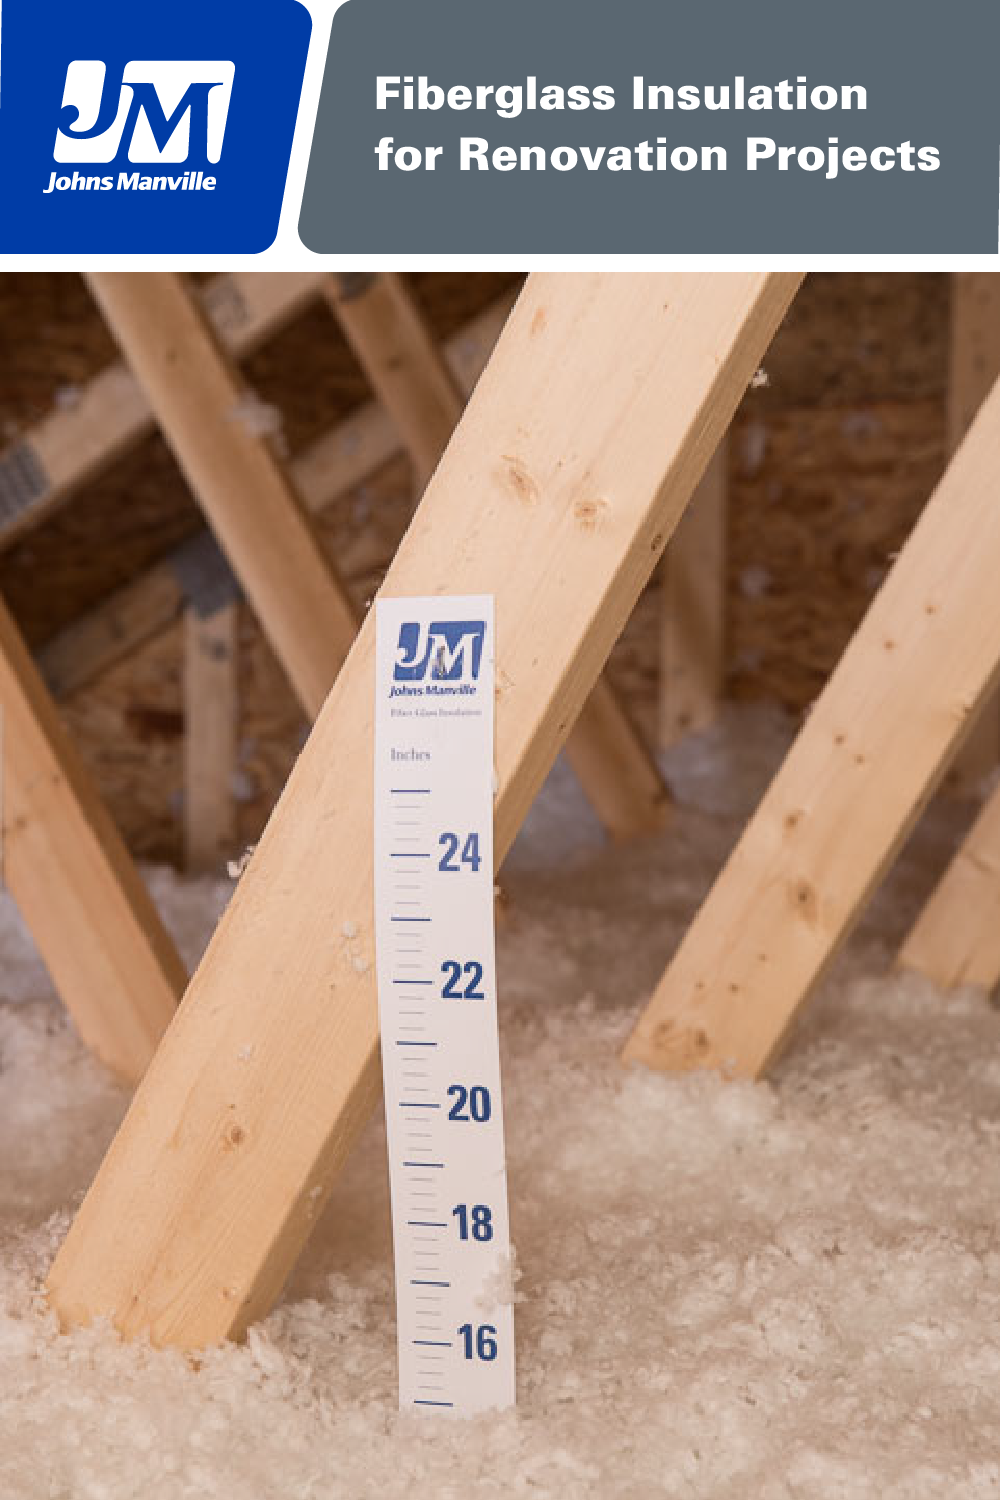 Are You Looking For Insulation For Your Attic Renovation Blow In Insulation Is Great For Hard To In Blown In Insulation Fiberglass Insulation Attic Renovation